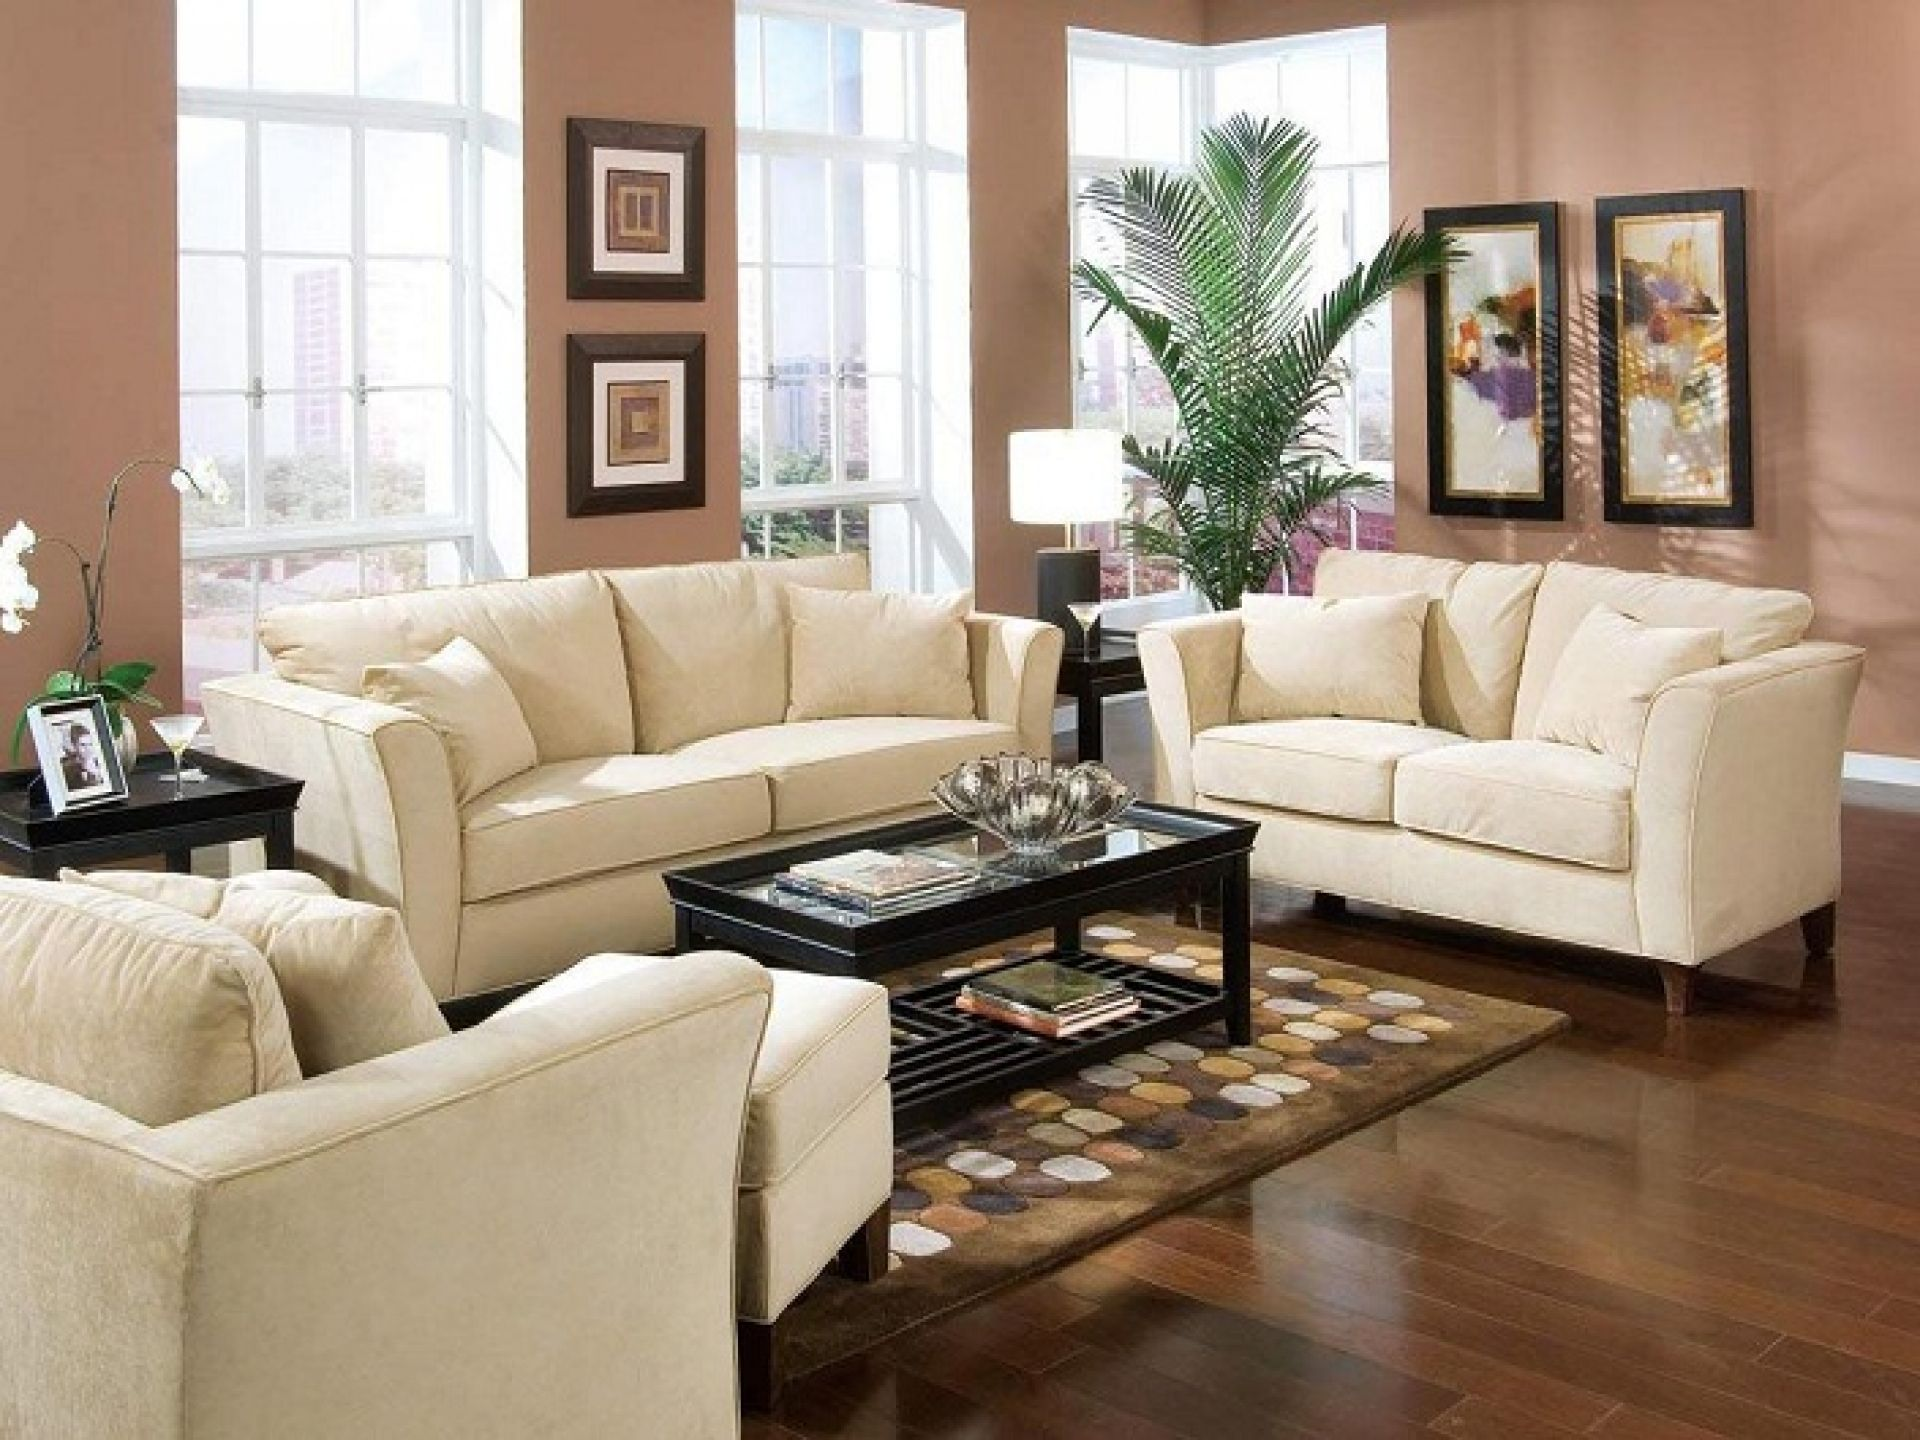 Interior Natural Small Living Room Color Schemes Interior Design Giesendesign White Sofa B Small Living Room Decor Living Room Sets Furniture Living Room Color